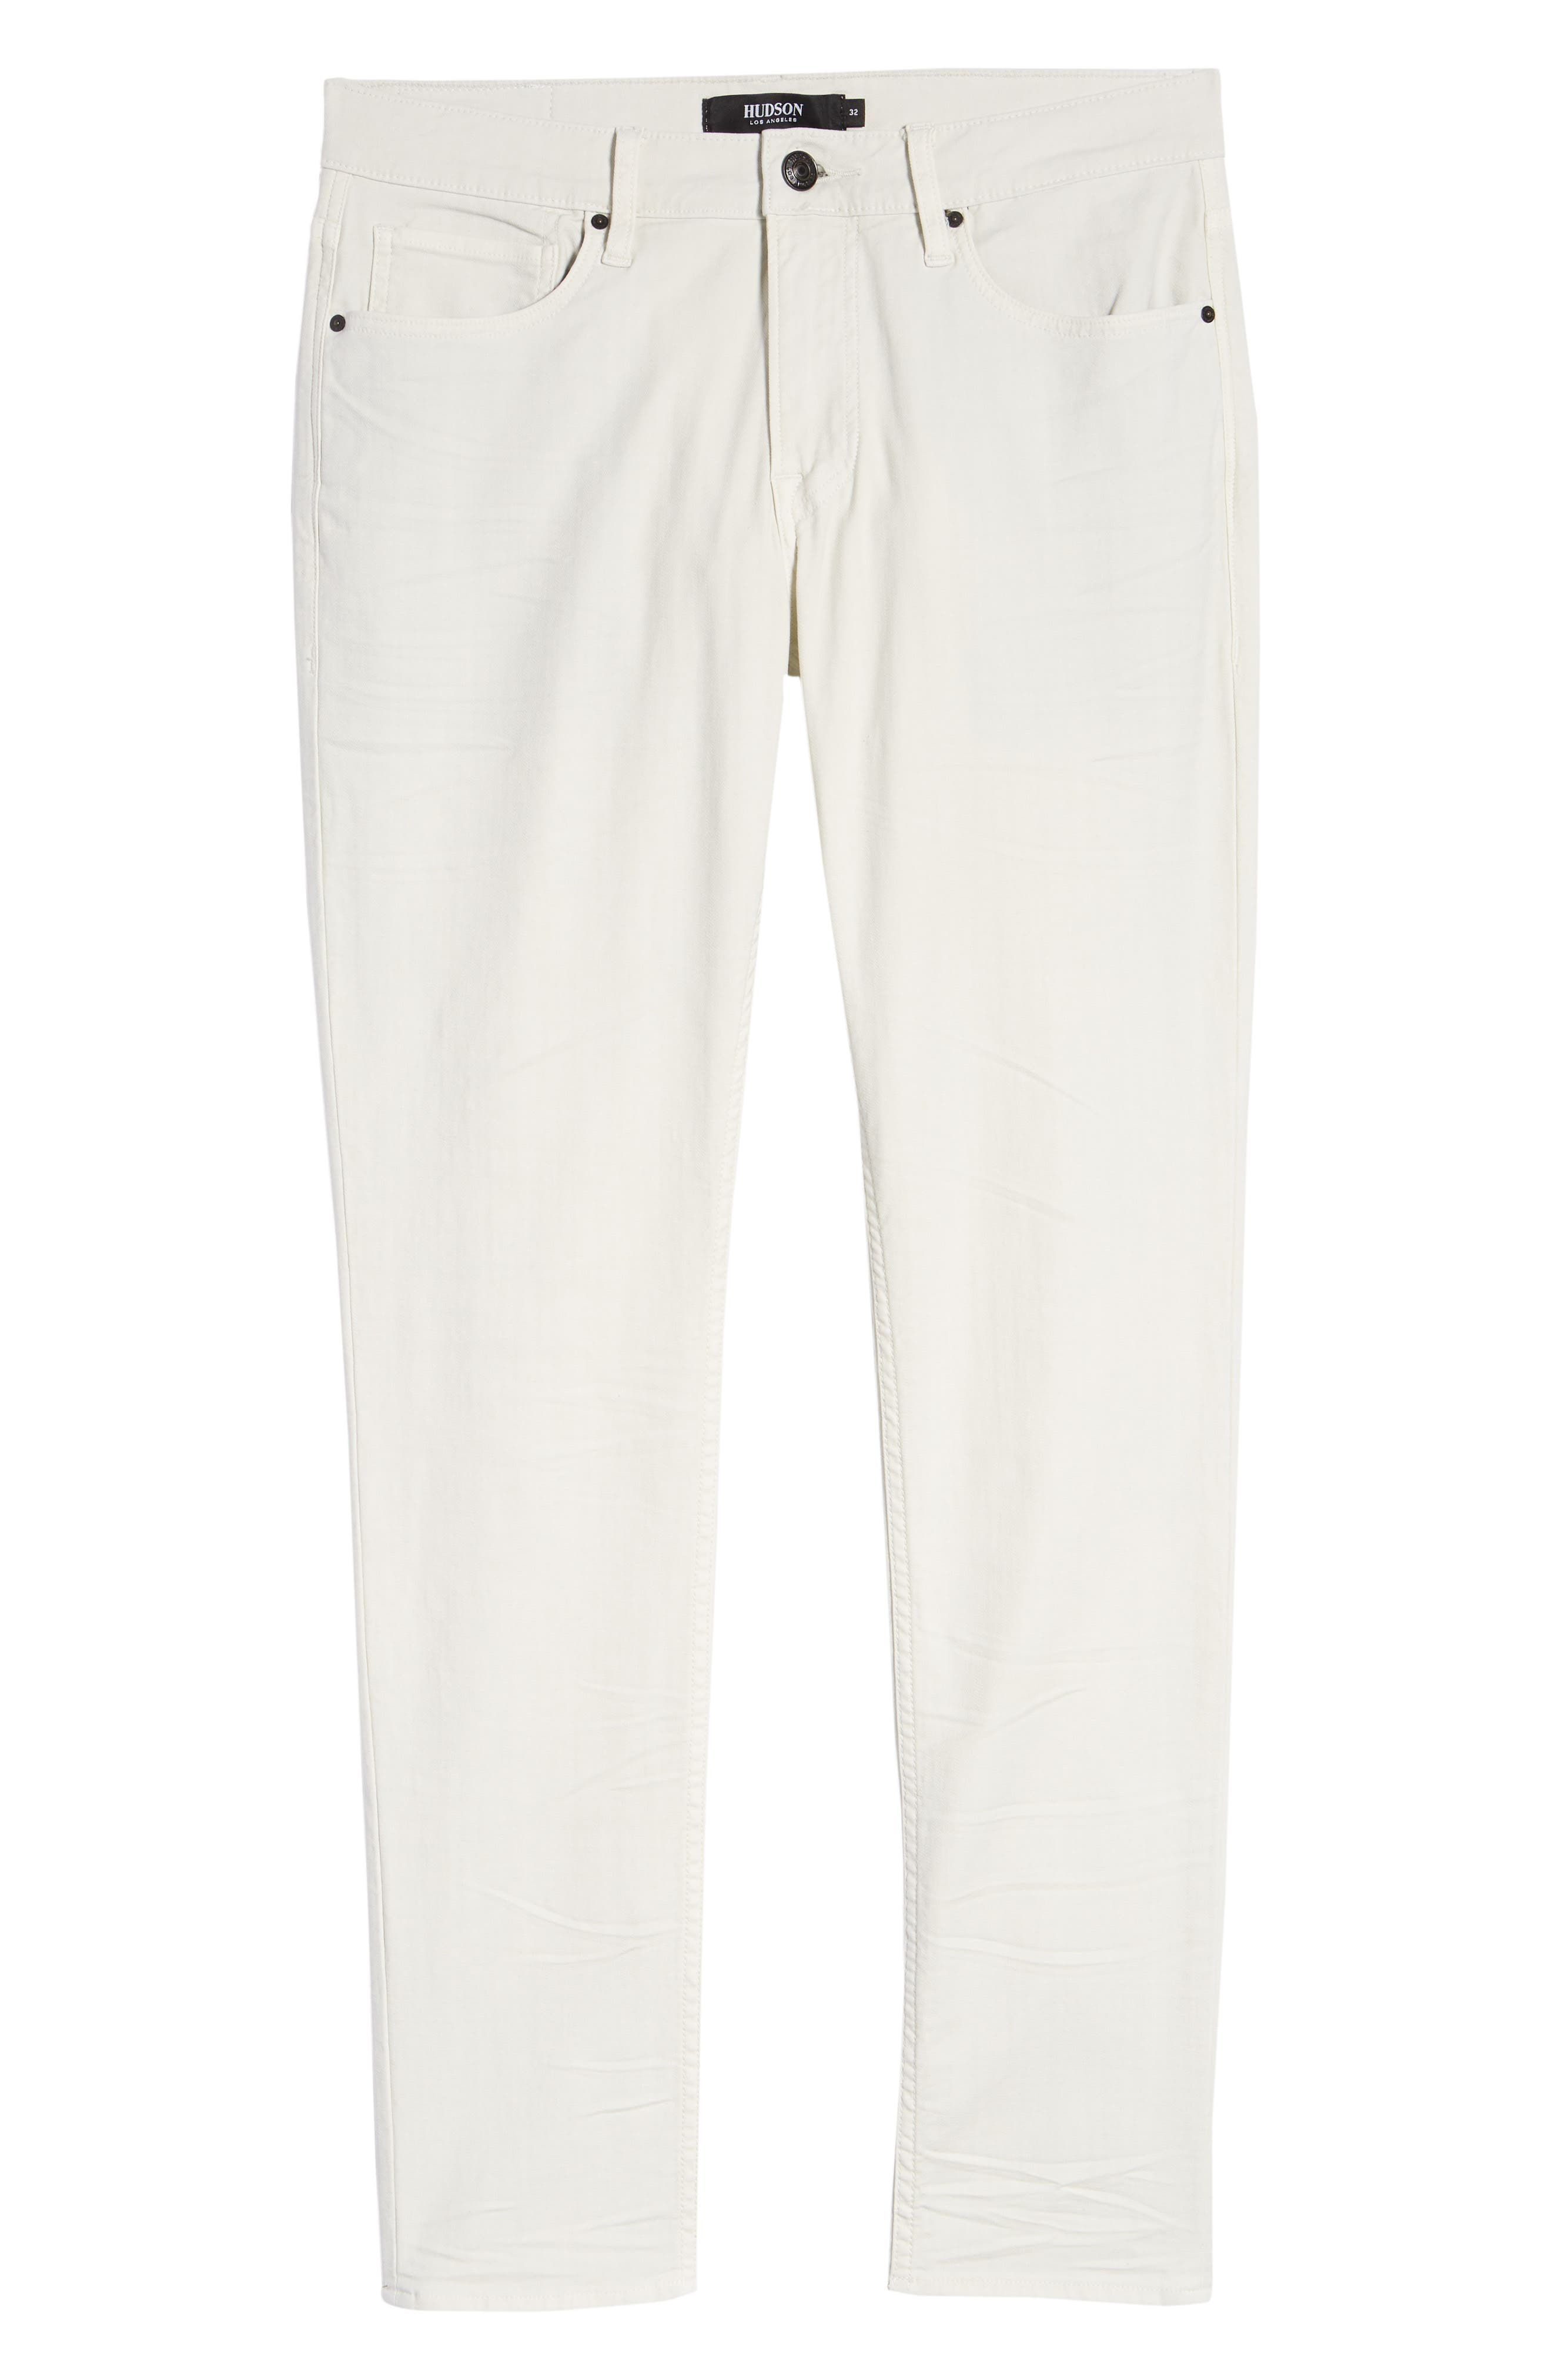 Hudson Axl Skinny Fit Jeans,                             Alternate thumbnail 6, color,                             DIRTY WHITE